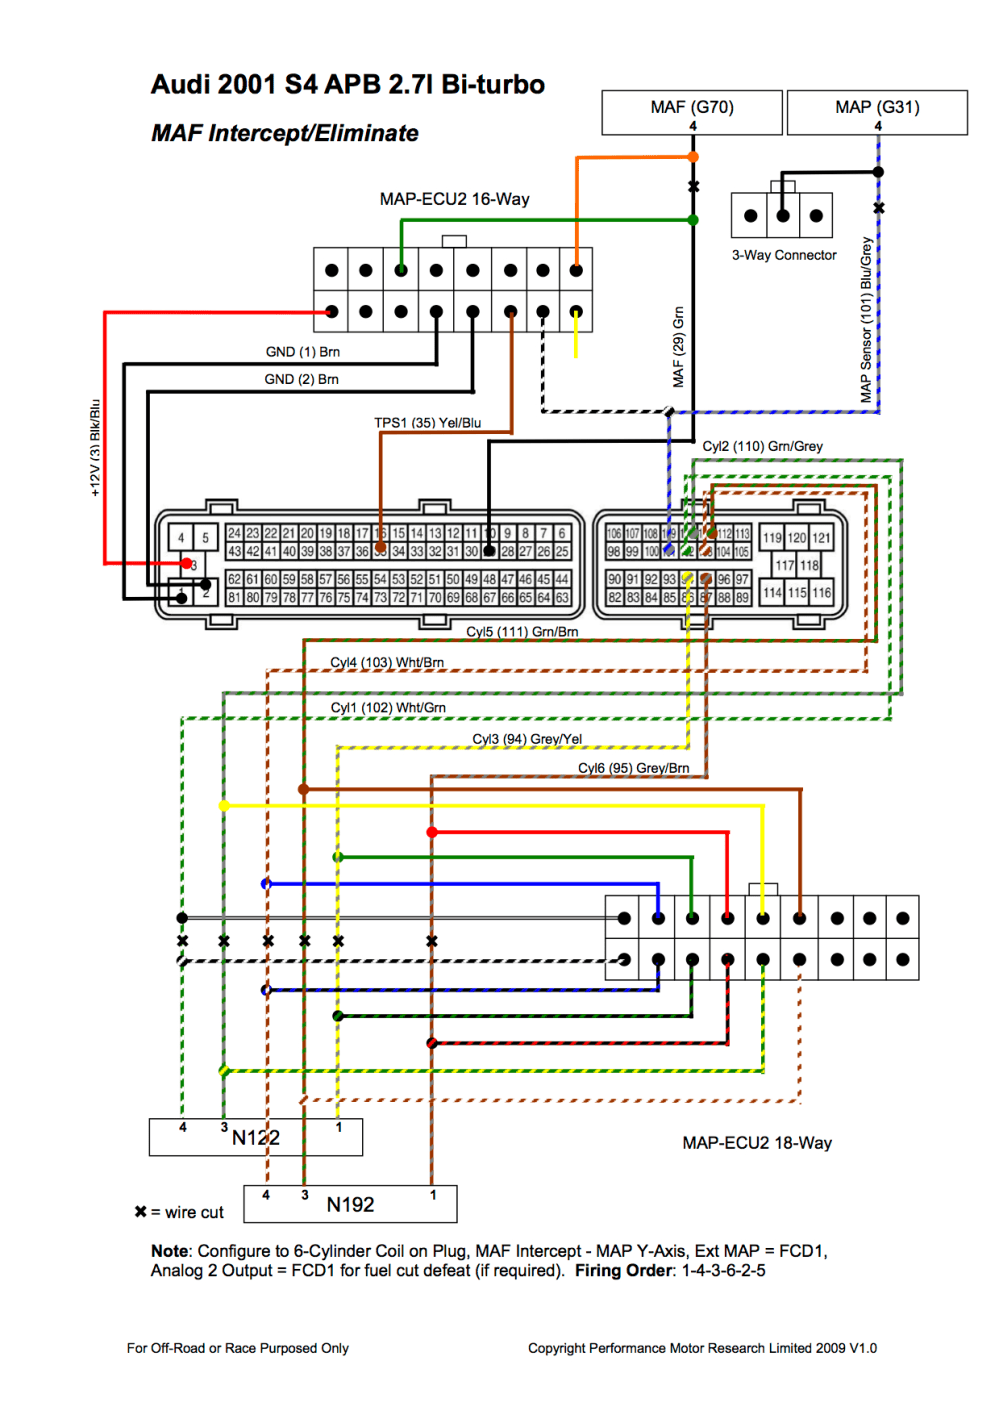 medium resolution of metra wiring harness diagram 2001 pt cruiser wiring diagrams metra 70 1729 wiring diagram 2008